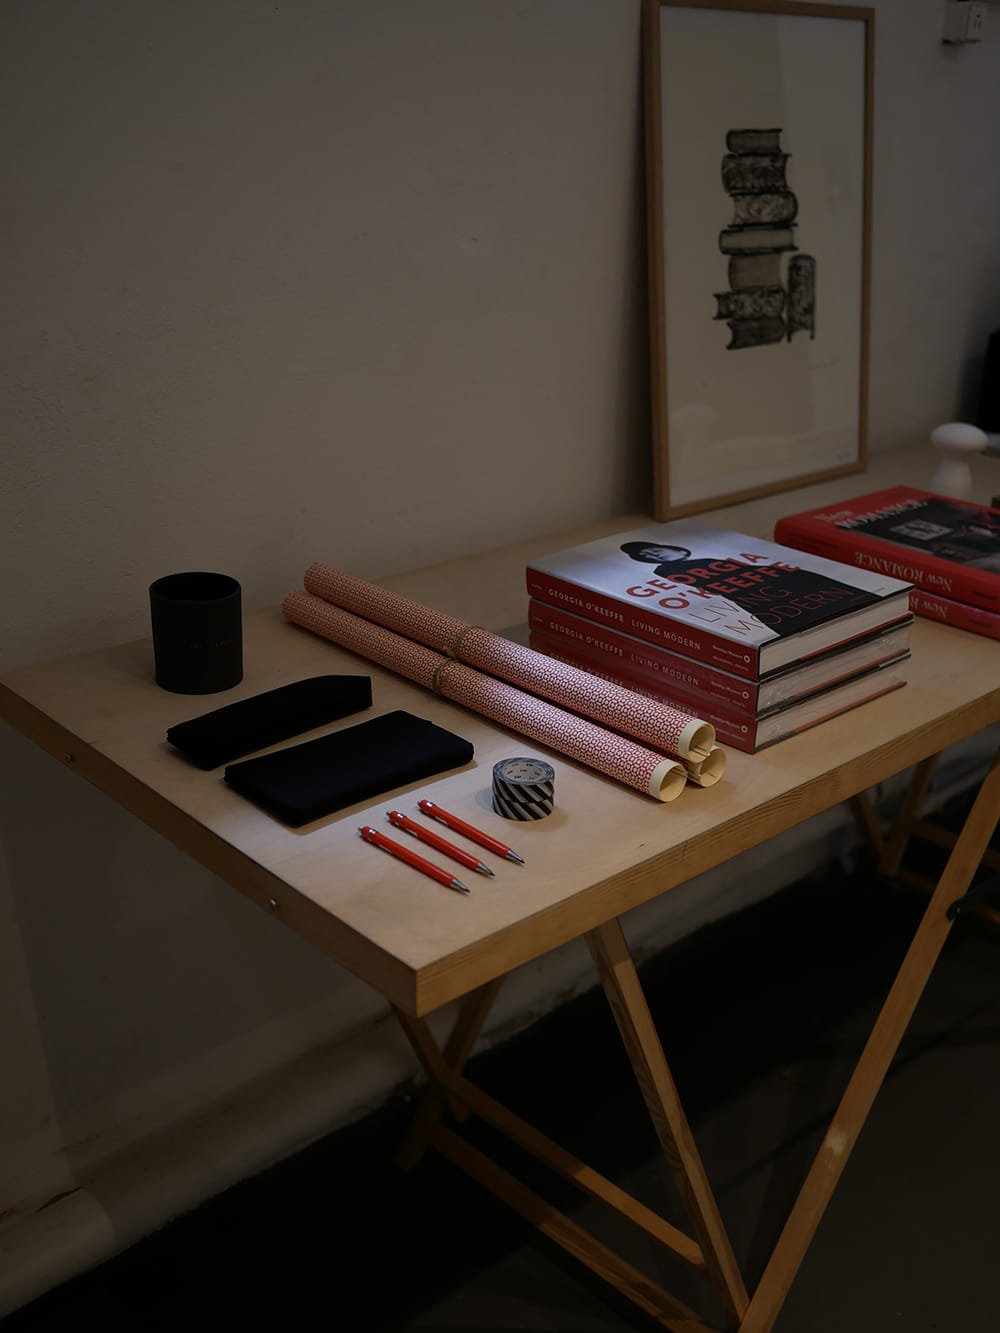 A display table with stationery arranged in red-colored theme. Copenhagen